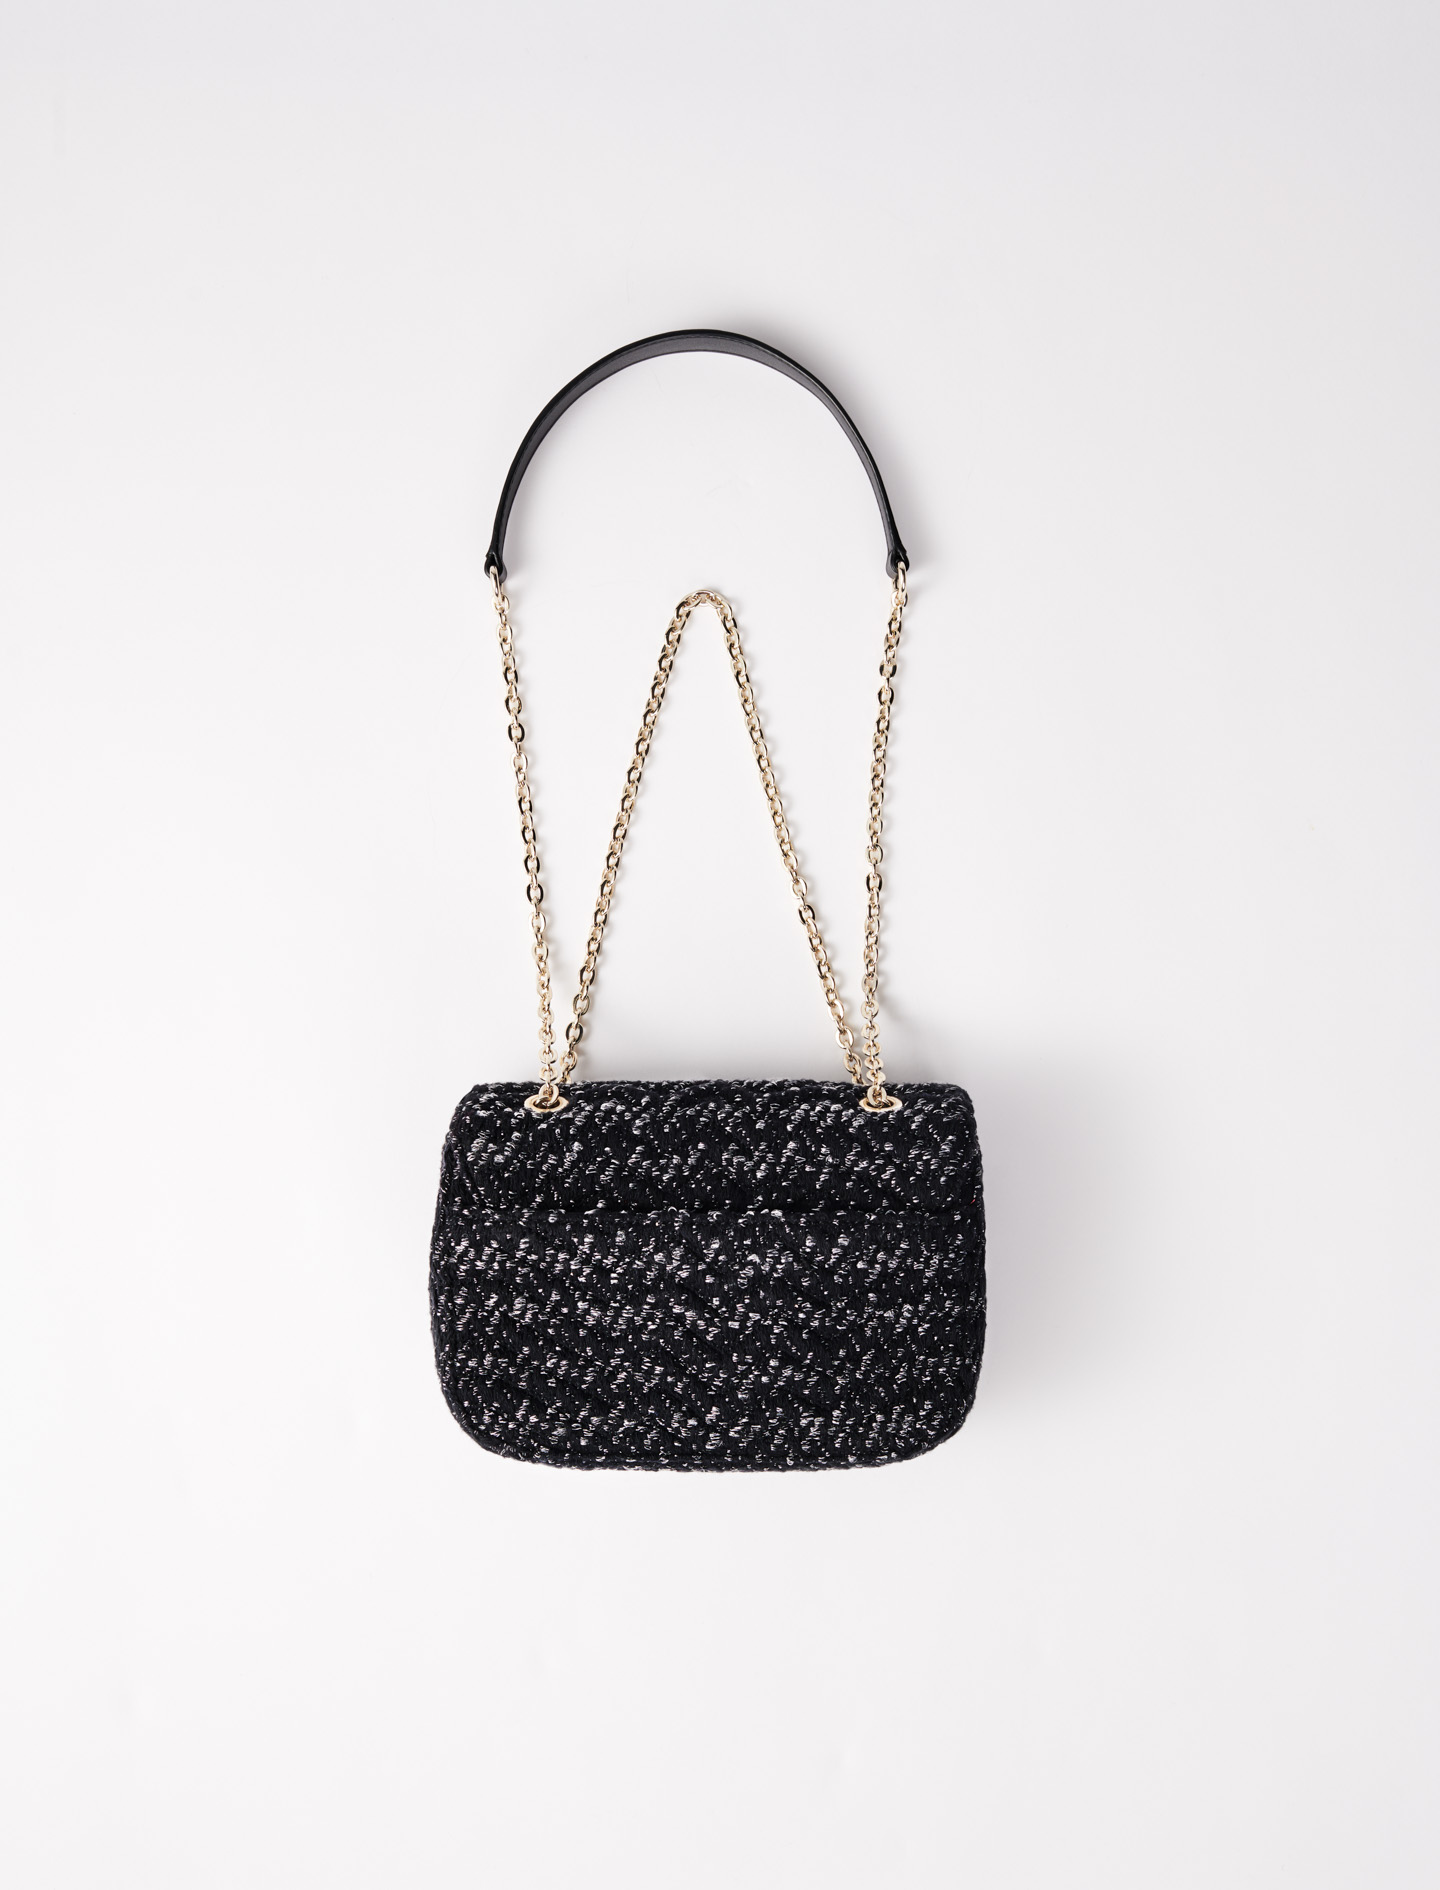 Small bag with contrasting tweed flap - Black